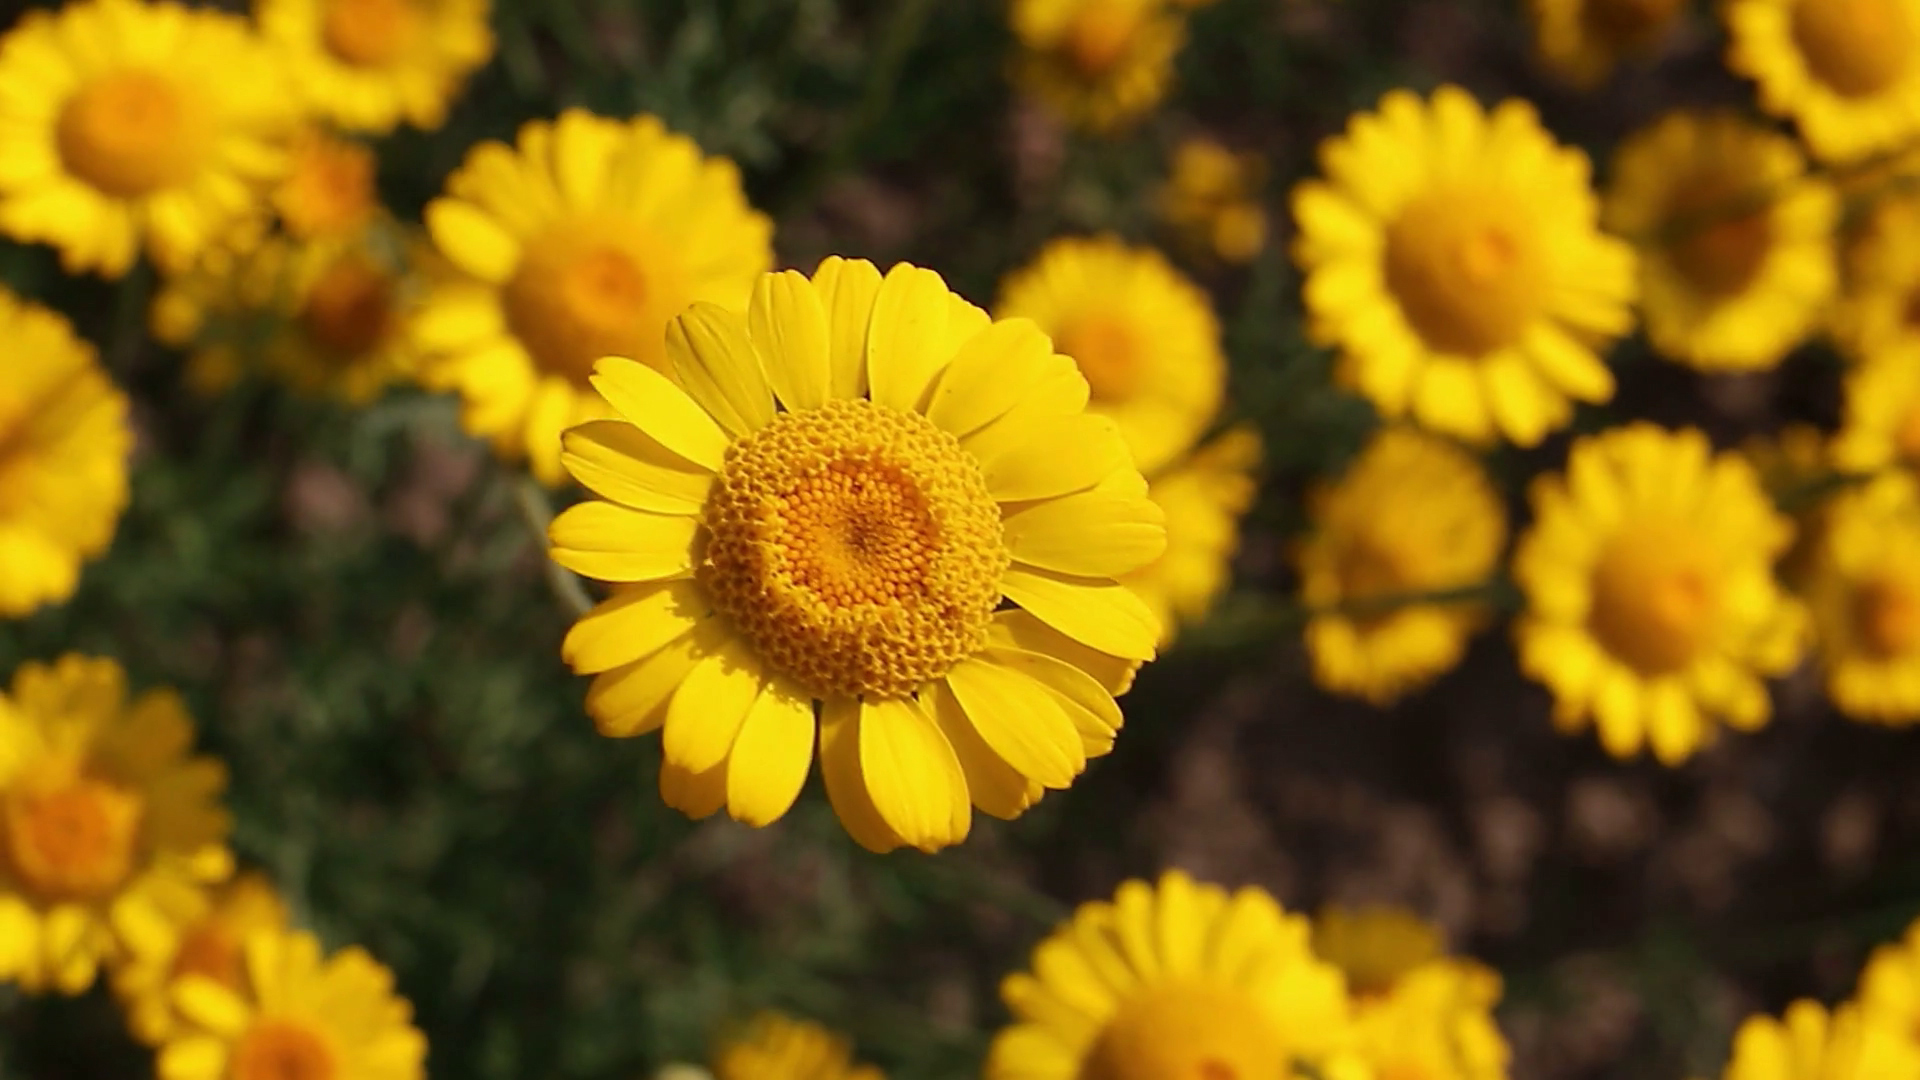 Yellow daisy flower images as best hd wallpapers for - Top hd wallpapers for laptop ...